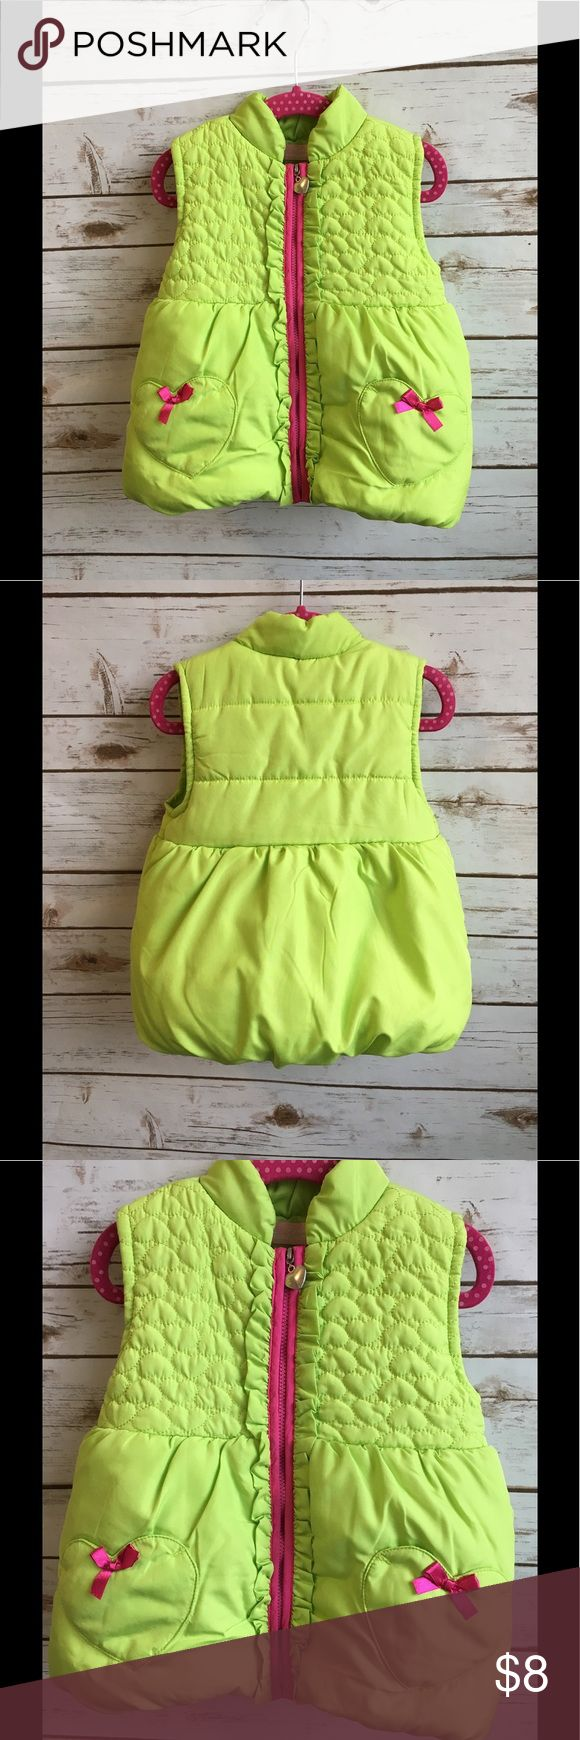 Little girls puffer vest lime green pink 3T hearts Little girls puffer vest lime green pink 3T hearts  Lime green with pink zipper and bows.  Pockets shaped as hearts.   Pre-owned. Worn and washed once.  No noted rips, stains or holes  Smoke free home.   -Bundle preowned kids clothes for a private discount- Kids Headquarters Jackets & Coats Vests